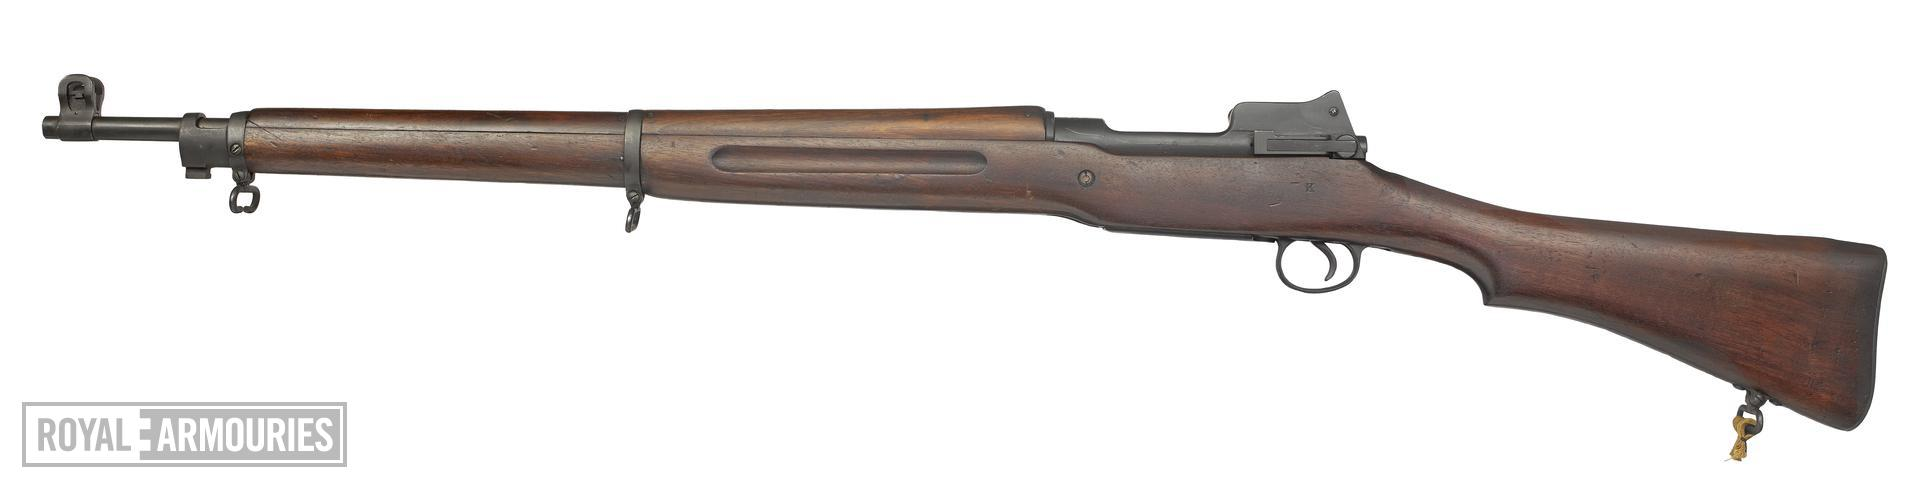 M1917 centrefire bolt action rifle , American, about 1917, made at Winchester Repeating Arms Factory